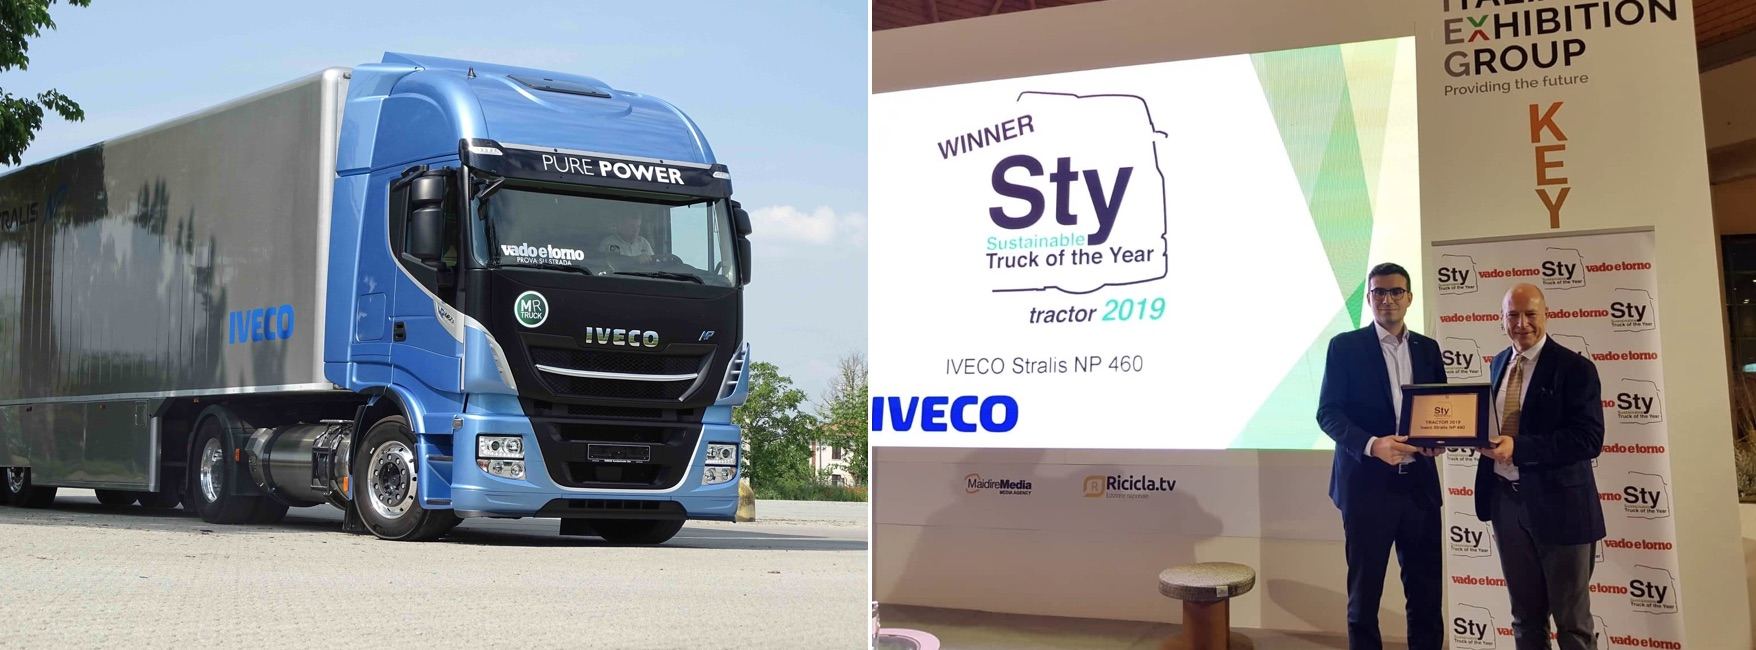 STY 'TRACTOR 2019': Iveco Stralis NP 460